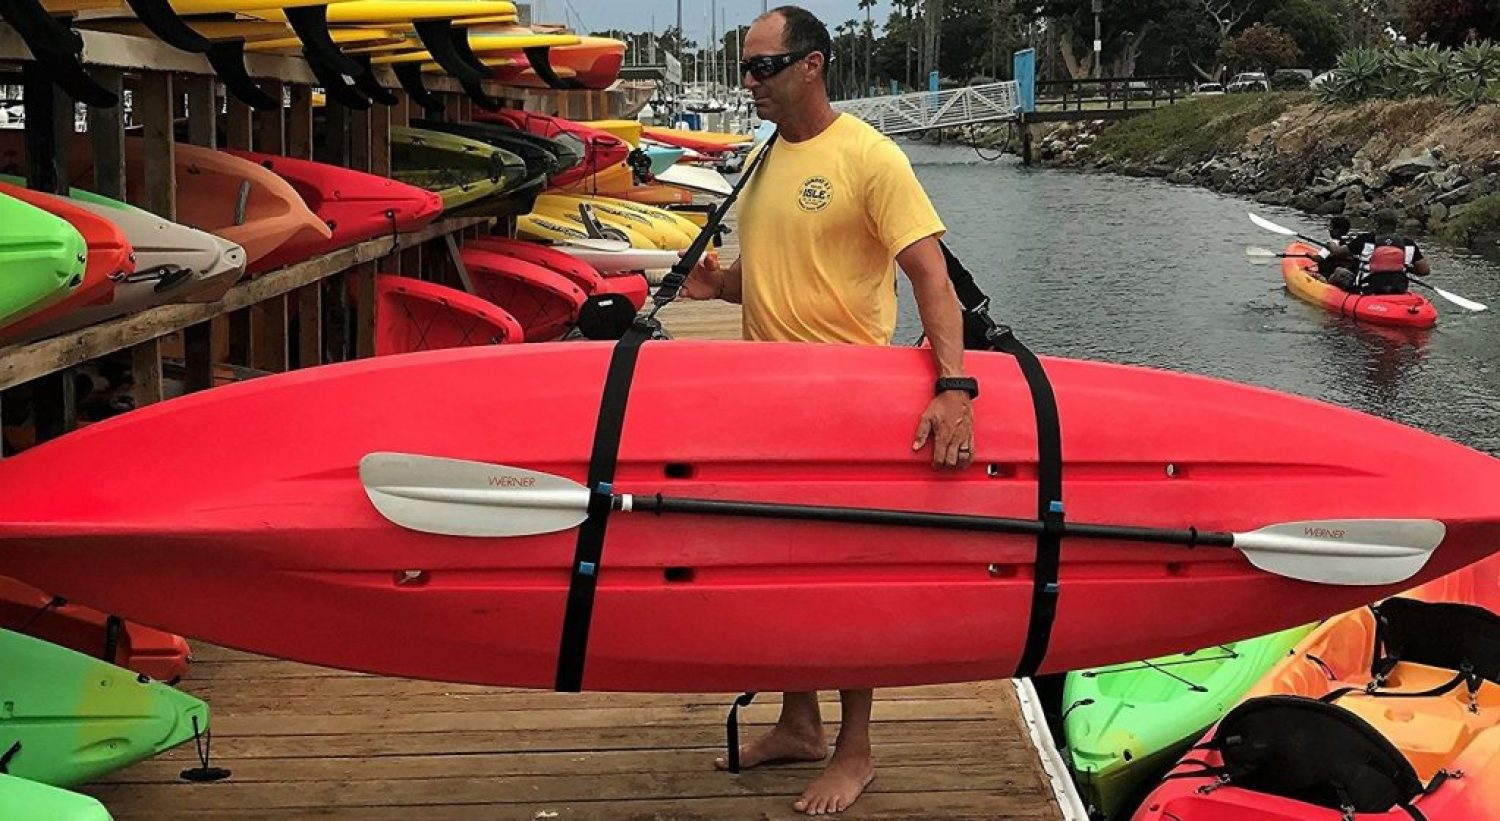 Kayak-Shoulder-Strap